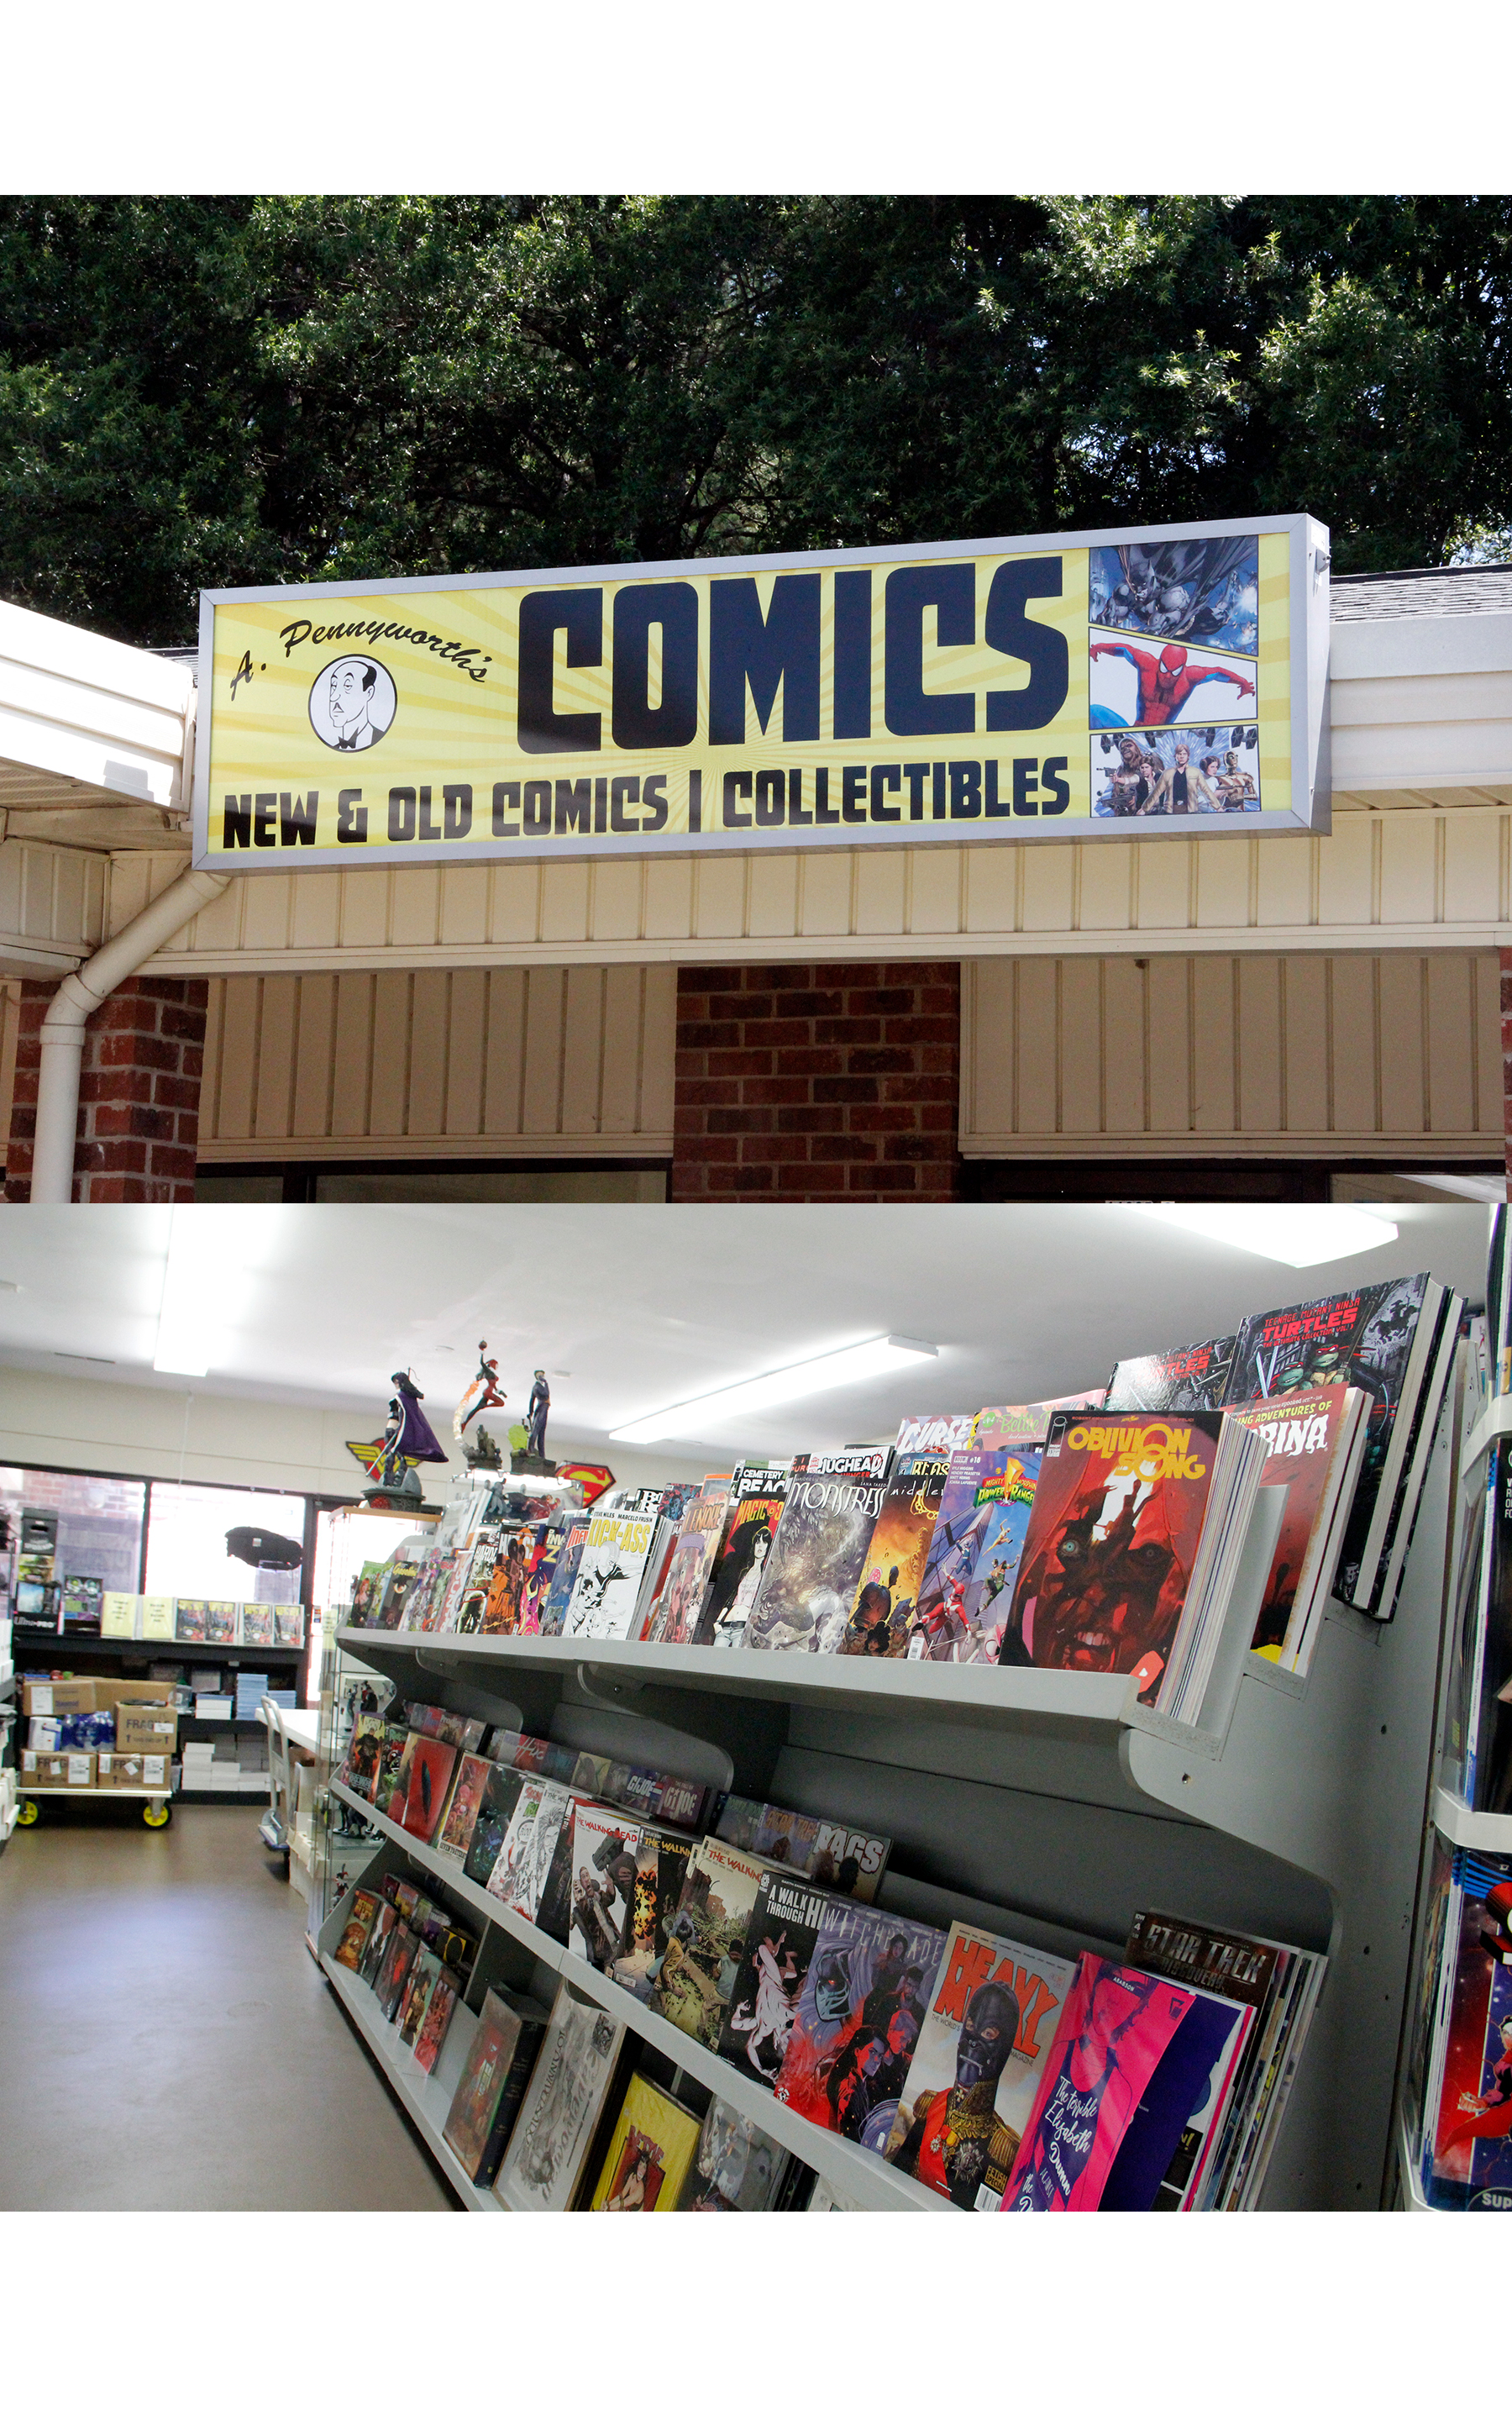 A. Pennyworth's Comics: Just like Alfred Pennyworth is a stable presence in the life of Bruce Wayne, so has A. Pennyworth's Comics, News, and Collectibles been to Matthews. Celebrating their 20-year anniversary in September, A. Pennyworth's offers new and old comics and collectibles from your favorite tv show, movie, and (of course!)comic book. Whether you're Team Batman, Team Superman, or Team Not Sure Who to Root For, your Inner Nerd will enjoy questing through the racks of comics, graphic novels, and other pop culture items inside the shop. - 11025 Monroe Road, Ste. D Matthews, North Carolina 28105